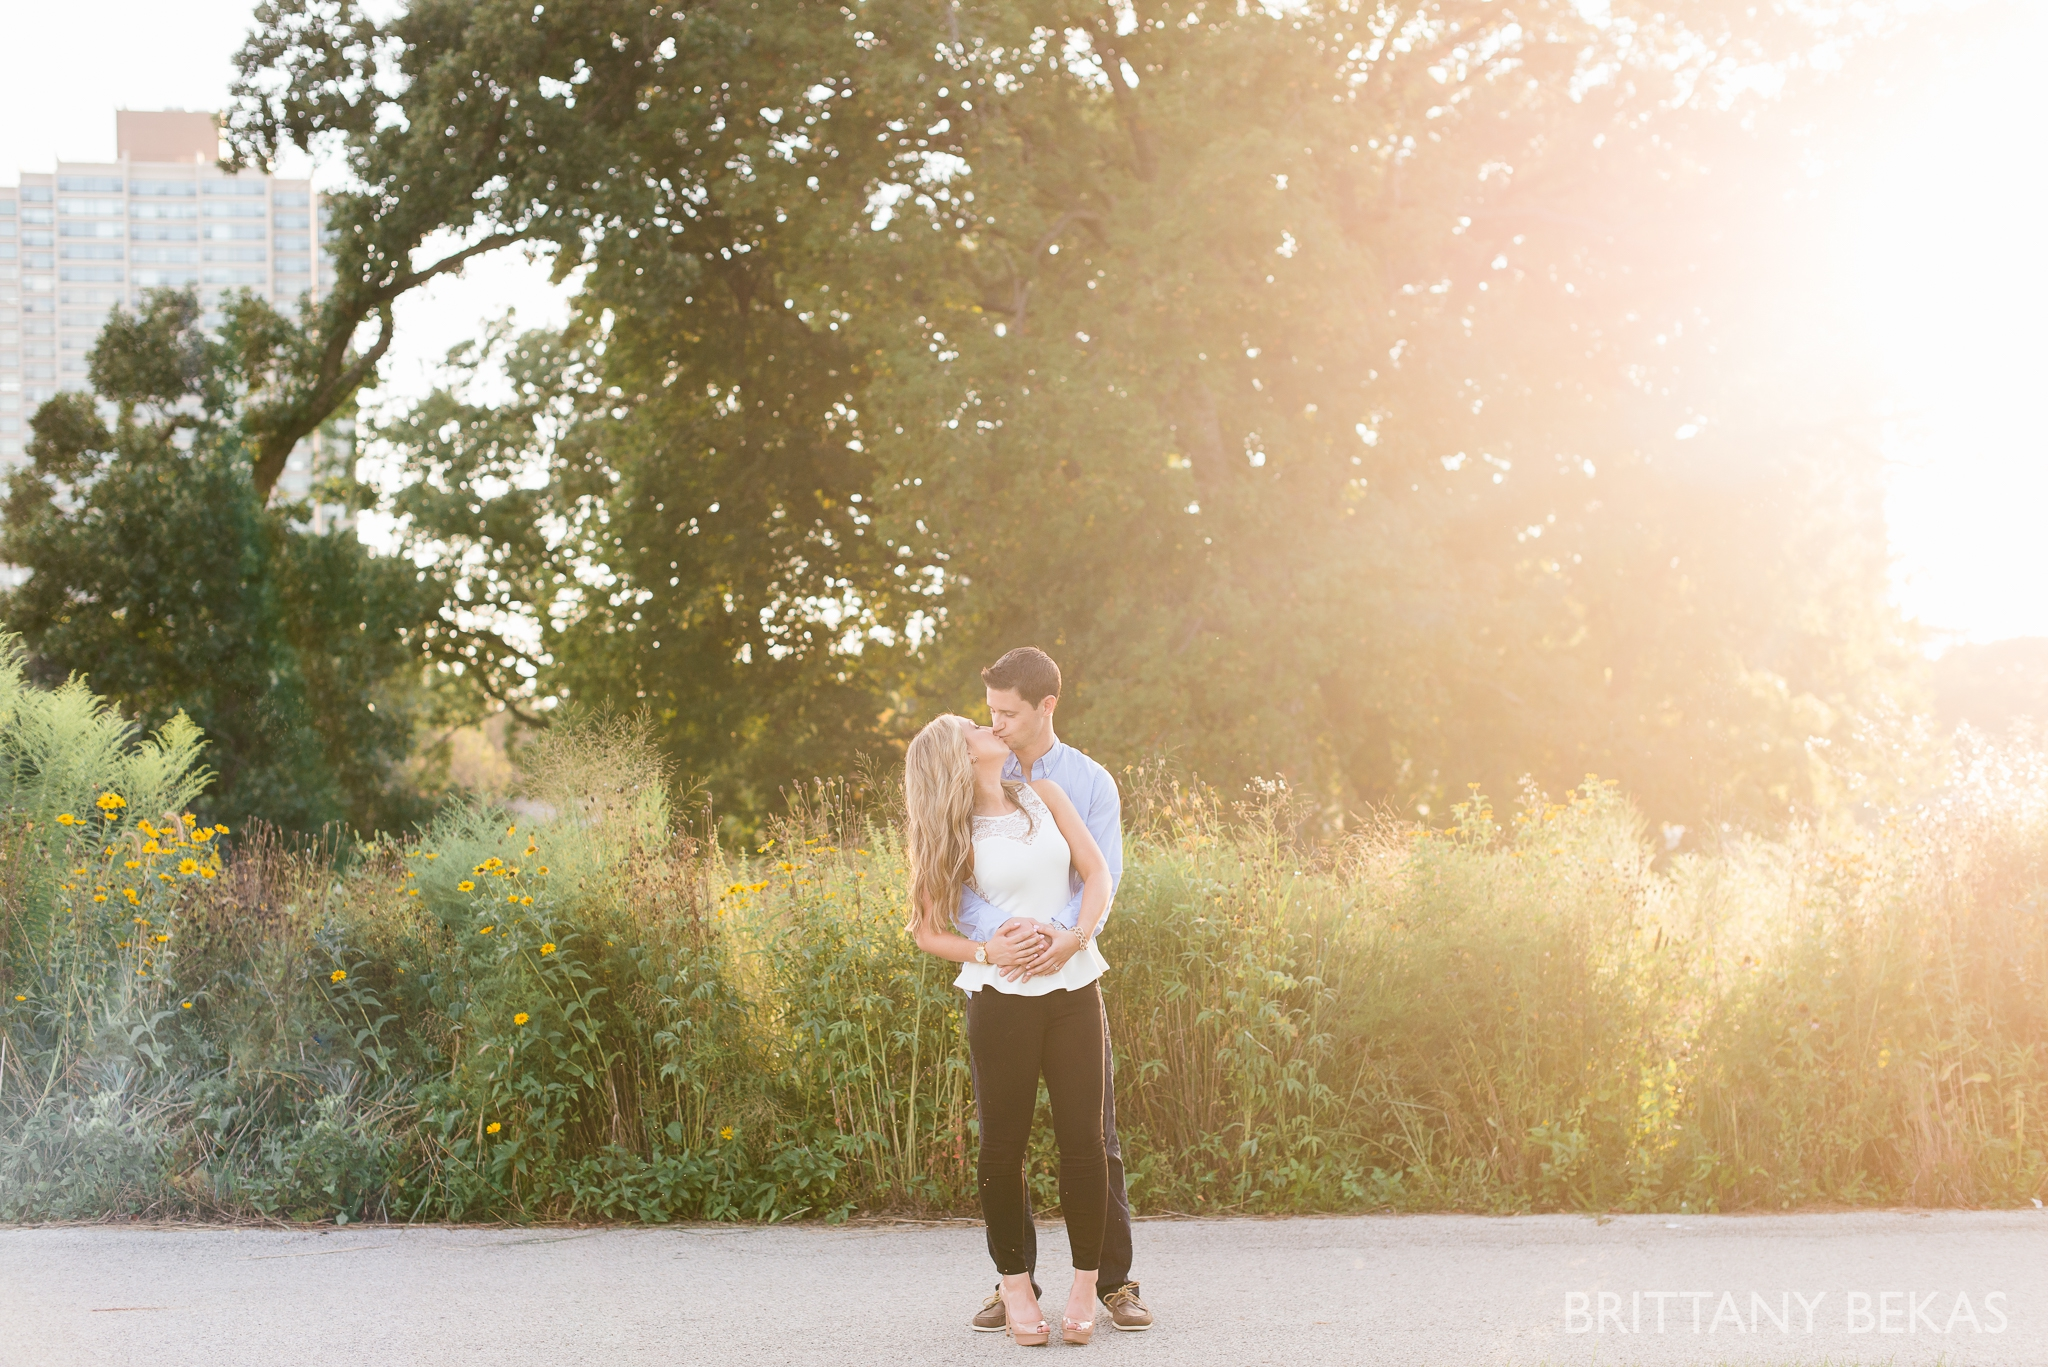 lincoln-park-chicago-engagement-photos-brittany-bekas-photography_0011